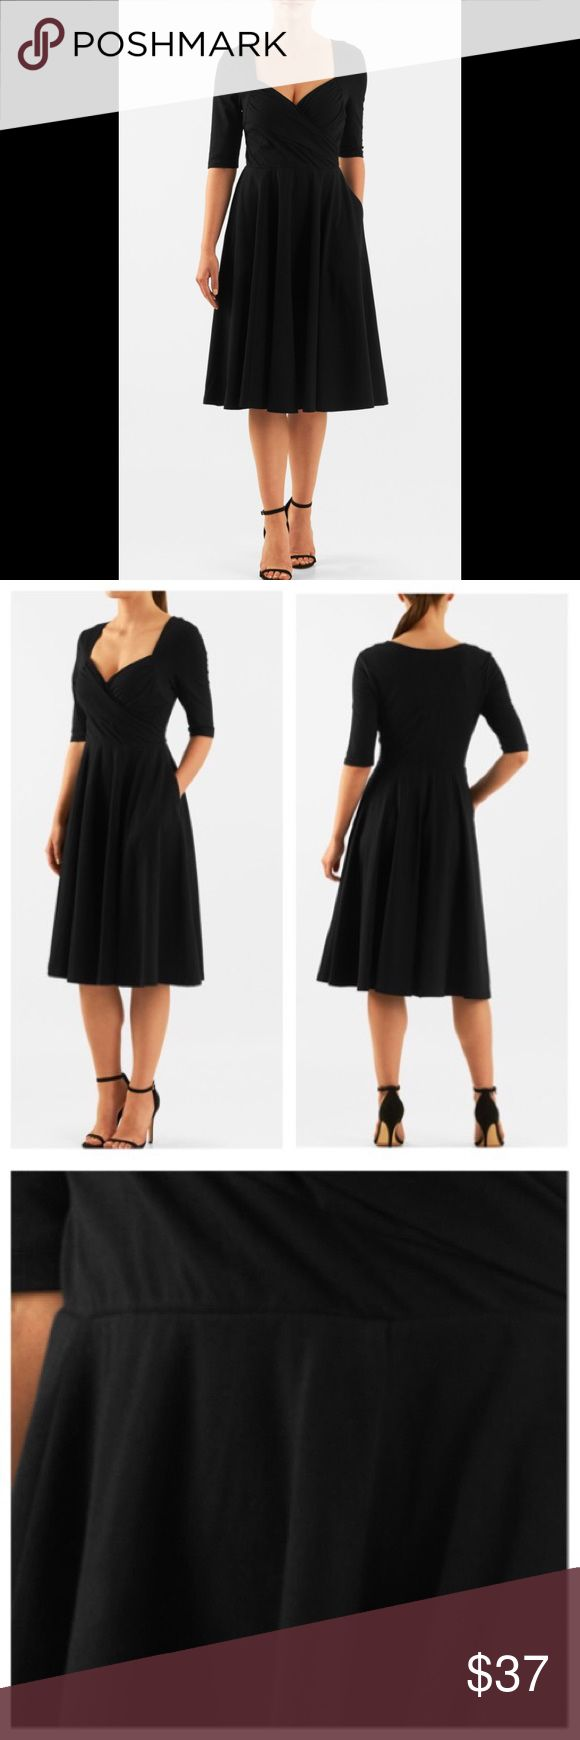 "New Eshakti Black Knit Fit & Flare Dress L 12 New Eshakti black knit fit & flare dress L 12 Measured flat: underarm to underarm: 36"" Waist: 29-34"" Length: 44 1/2"" Sleeve: 13"" Eshakti size guide for 12 bust: 38 1/2"" Slips on overhead, sweetheart neckline, ruched surplice bodice. Seamed light elastic waist, full flared skirt w/ side seam pockets. Cotton/spandex, jersey knit, light structured feel, light stretch, midweight. New w/cut out Eshakti tag to prevent returning to Eshakti eshakti…"